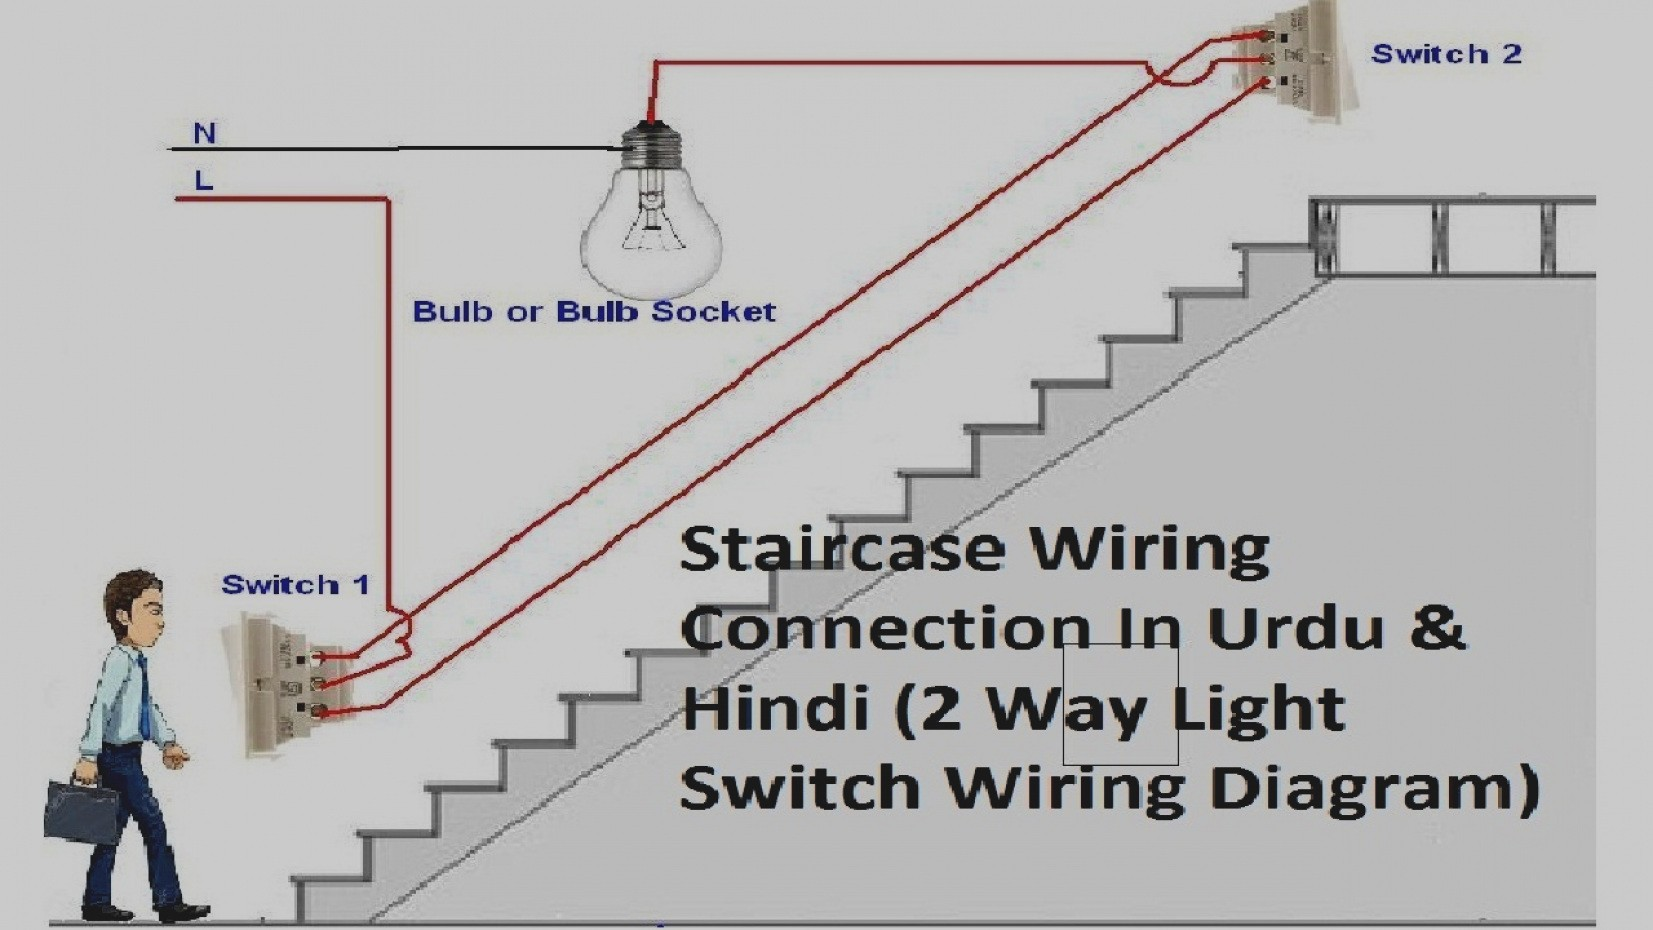 Swell 25 Unique Of 2 Way House Wiring Two Light Switch Diagram For A Wiring Cloud Uslyletkolfr09Org